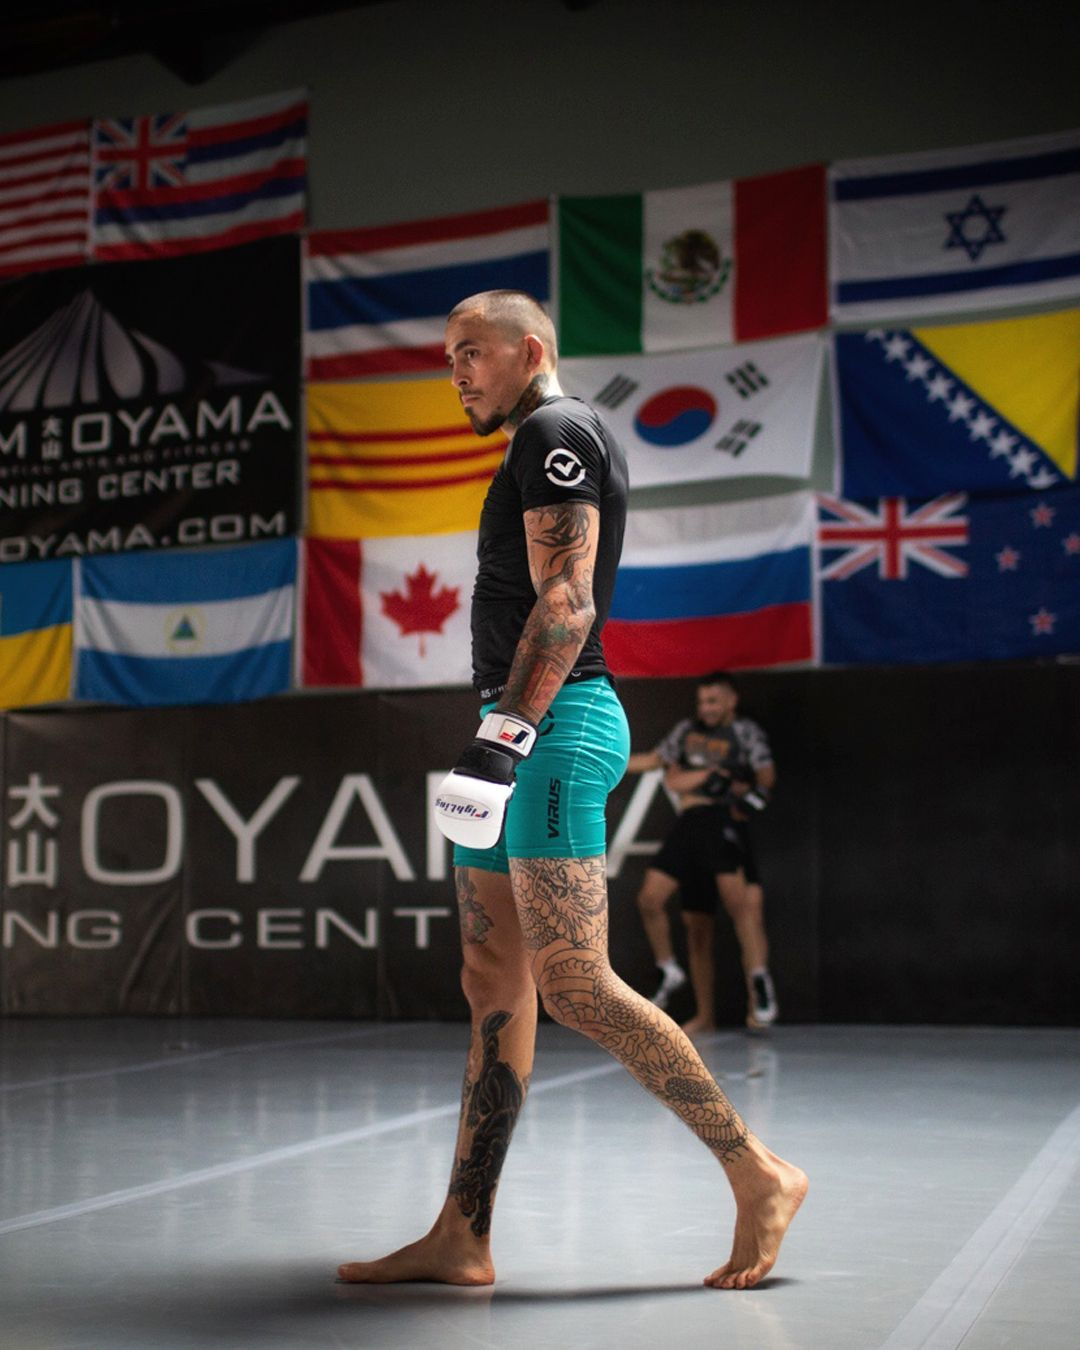 Best of luck to chitoveraufc as he takes the octagon at